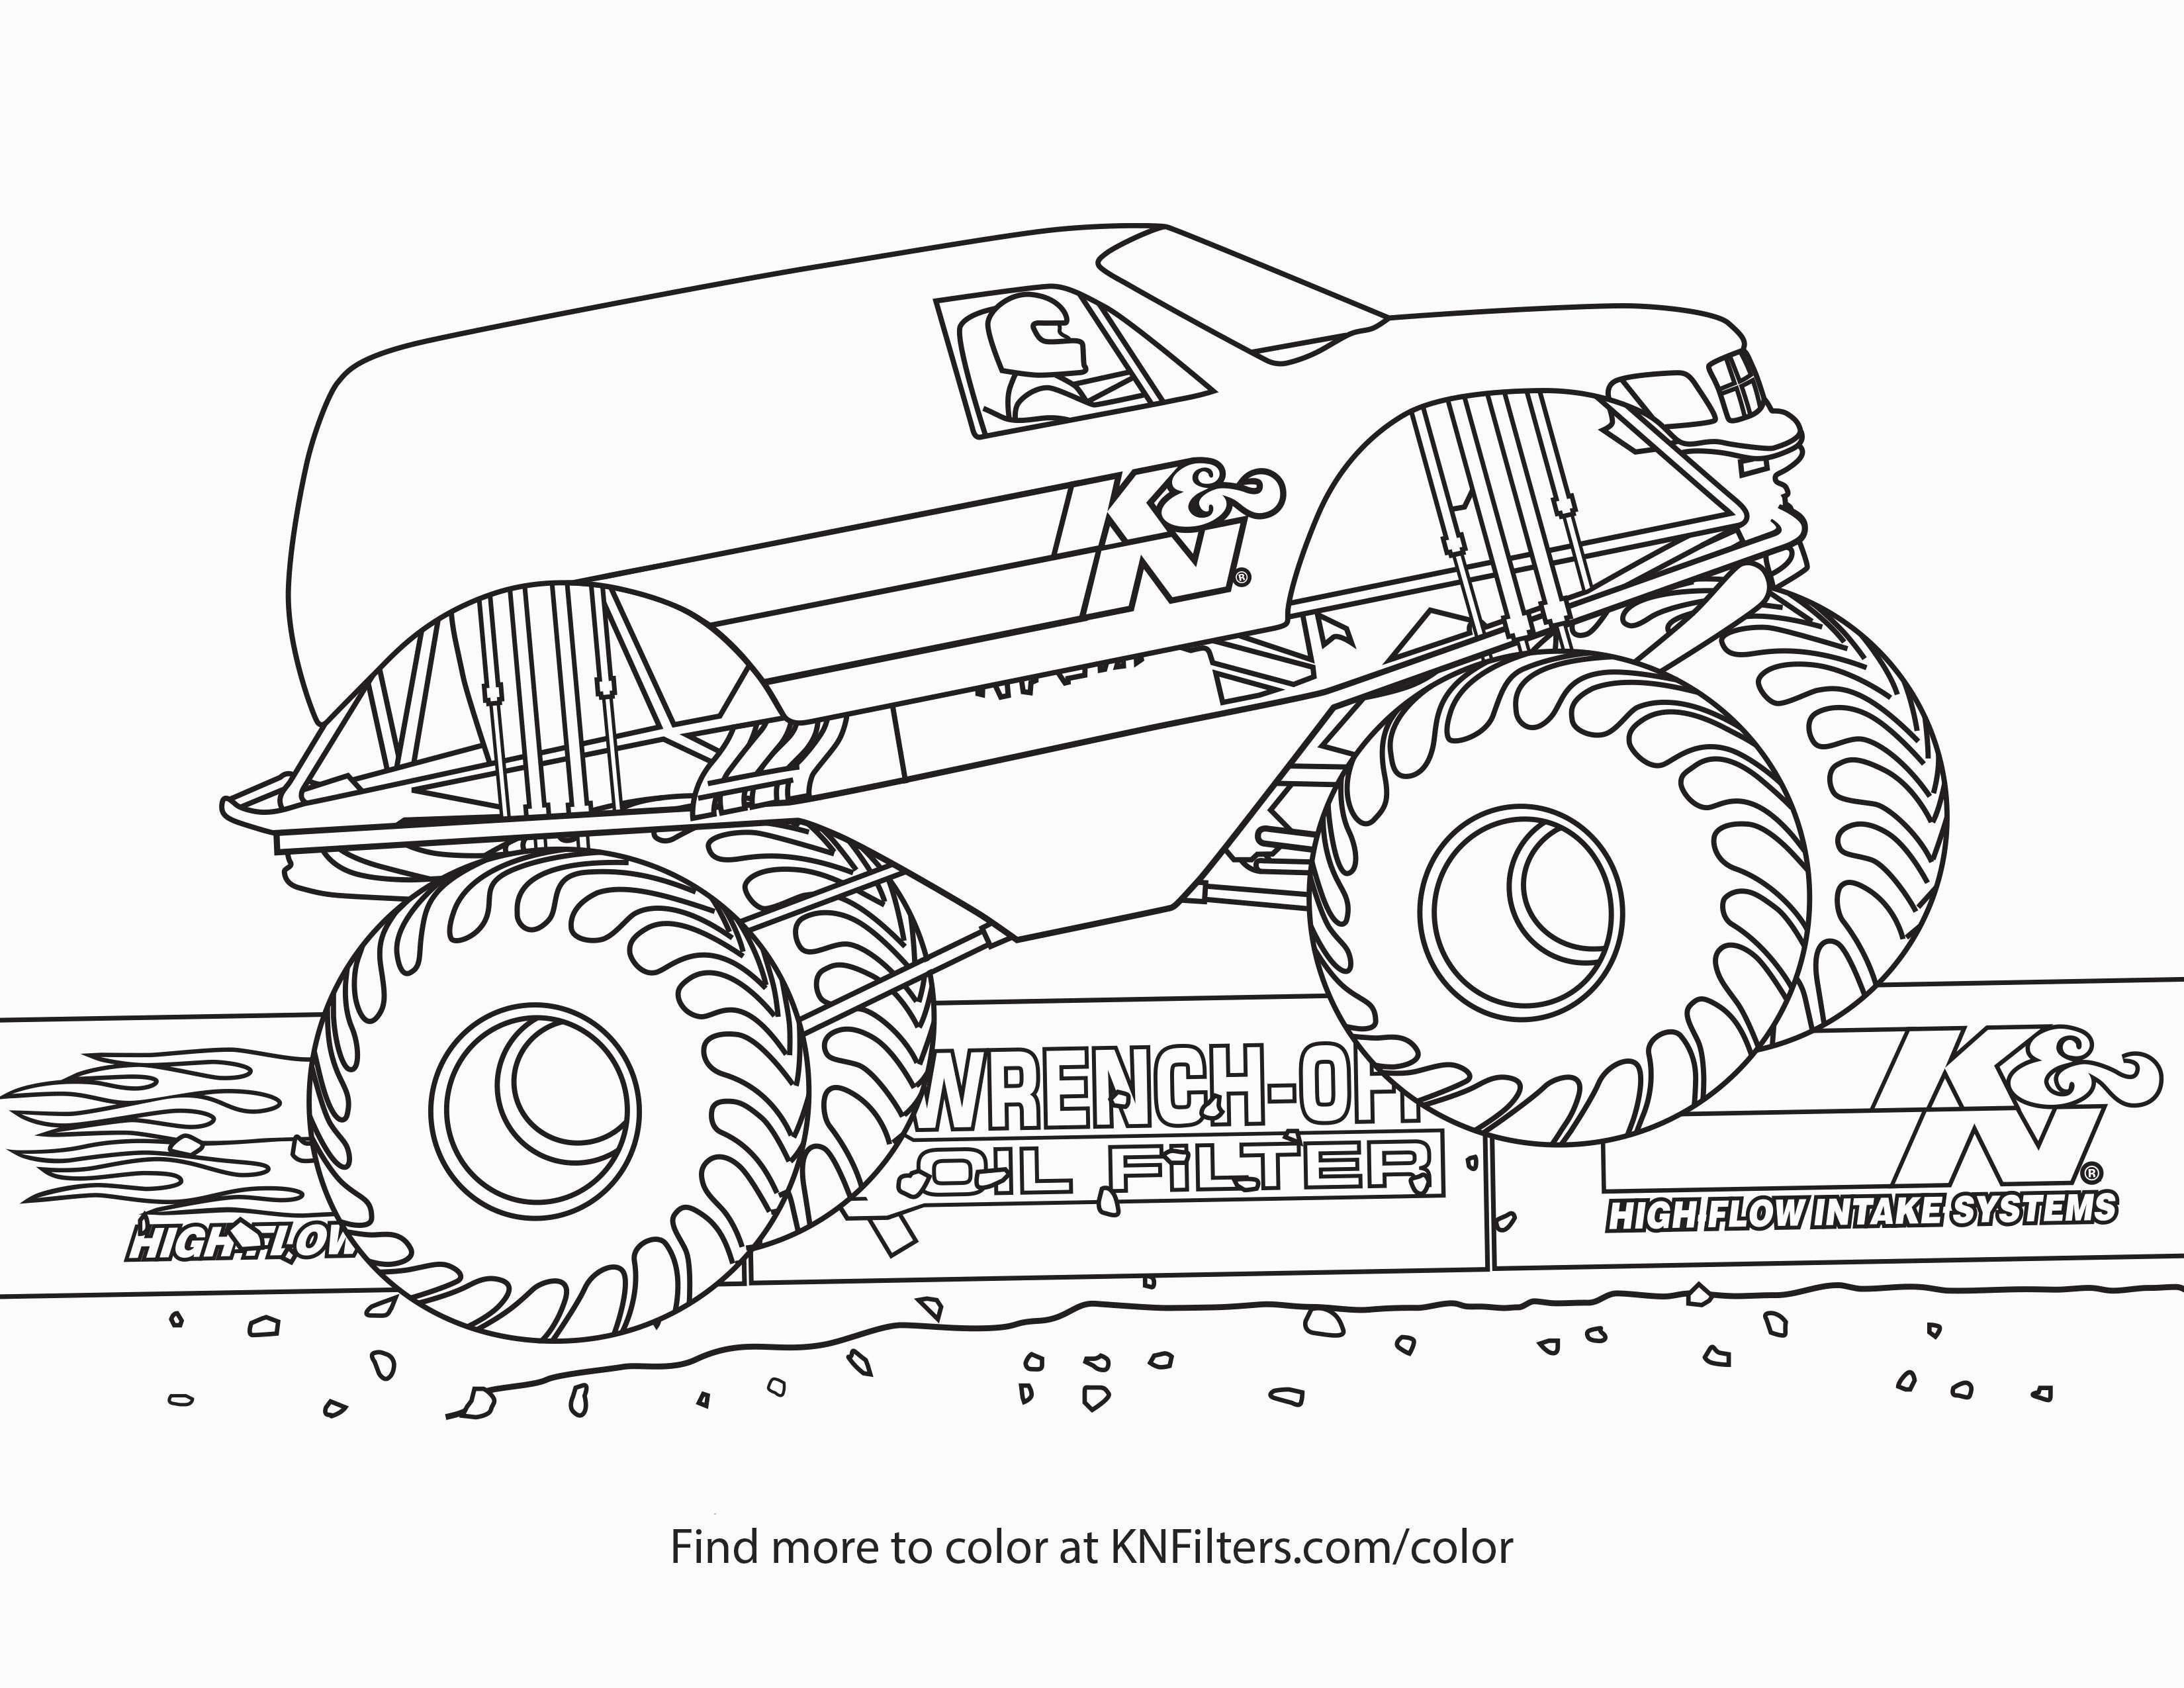 Truck Coloring Pages Free Beautiful Free Printable Blaze Coloring Pages Inspirational Fin Monster Truck Coloring Pages Truck Coloring Pages Cool Coloring Pages [ 2550 x 3300 Pixel ]